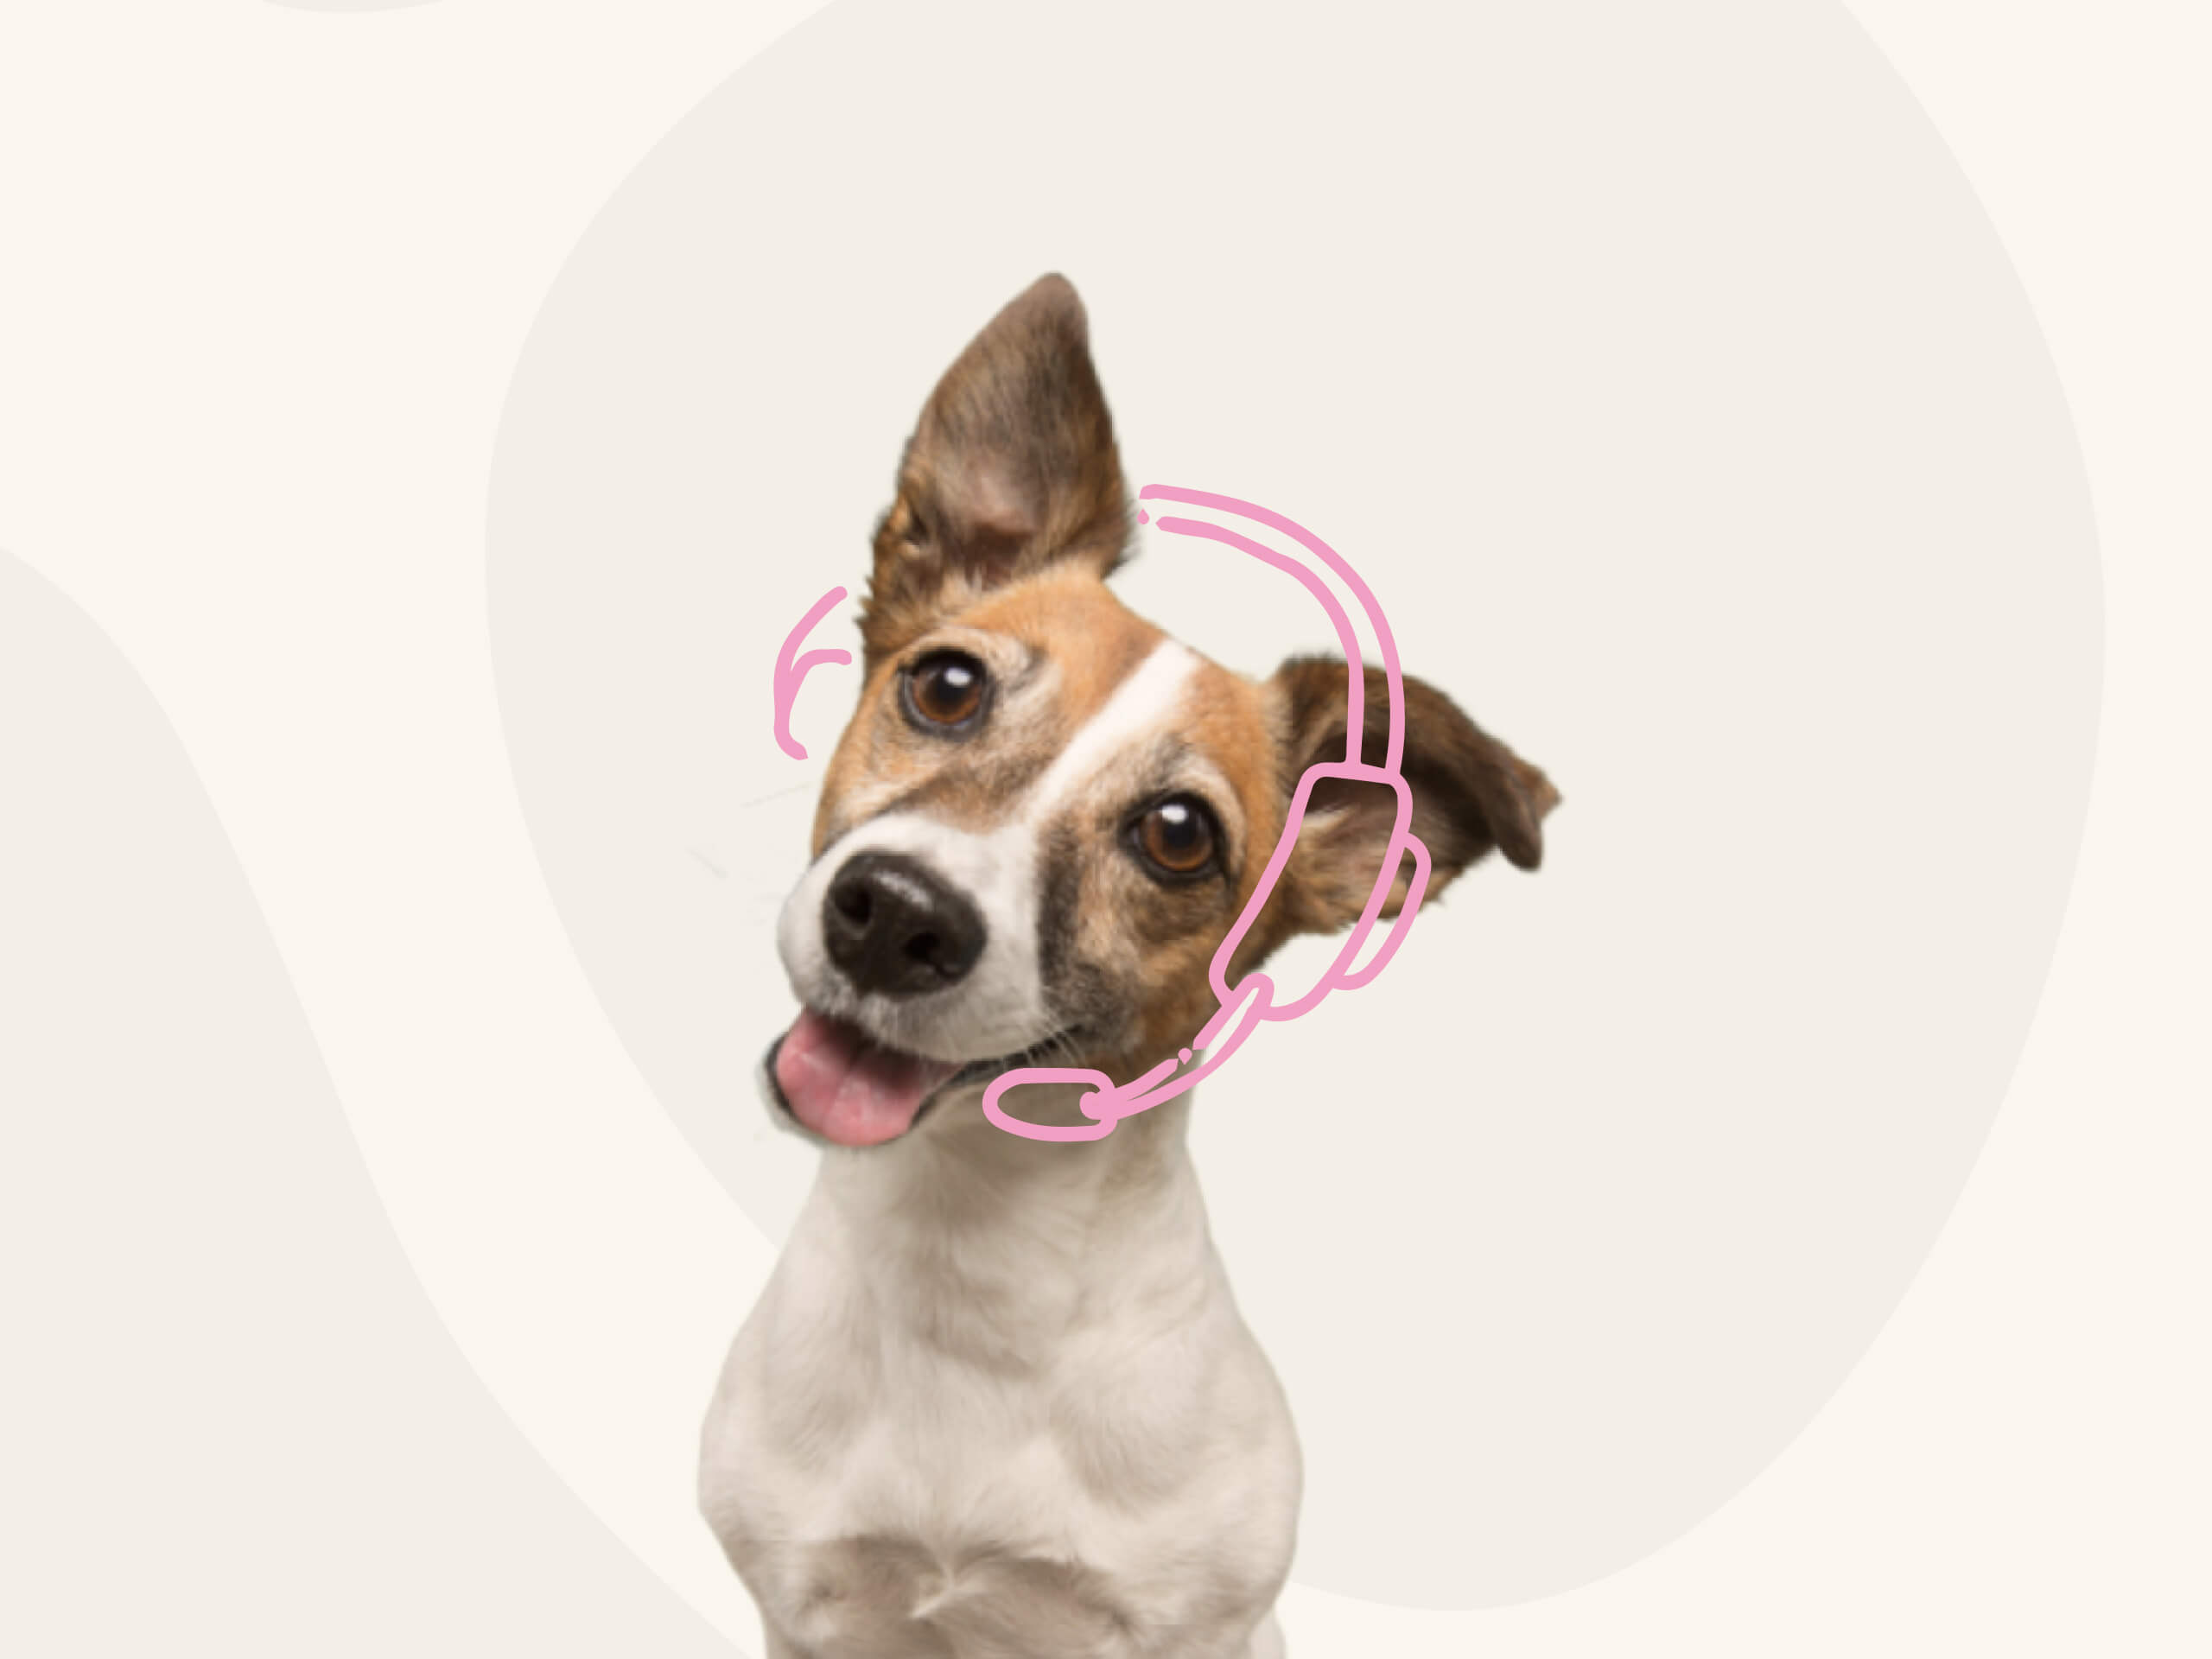 A mixed breed pup on a green background with an illustrated headset around their head.